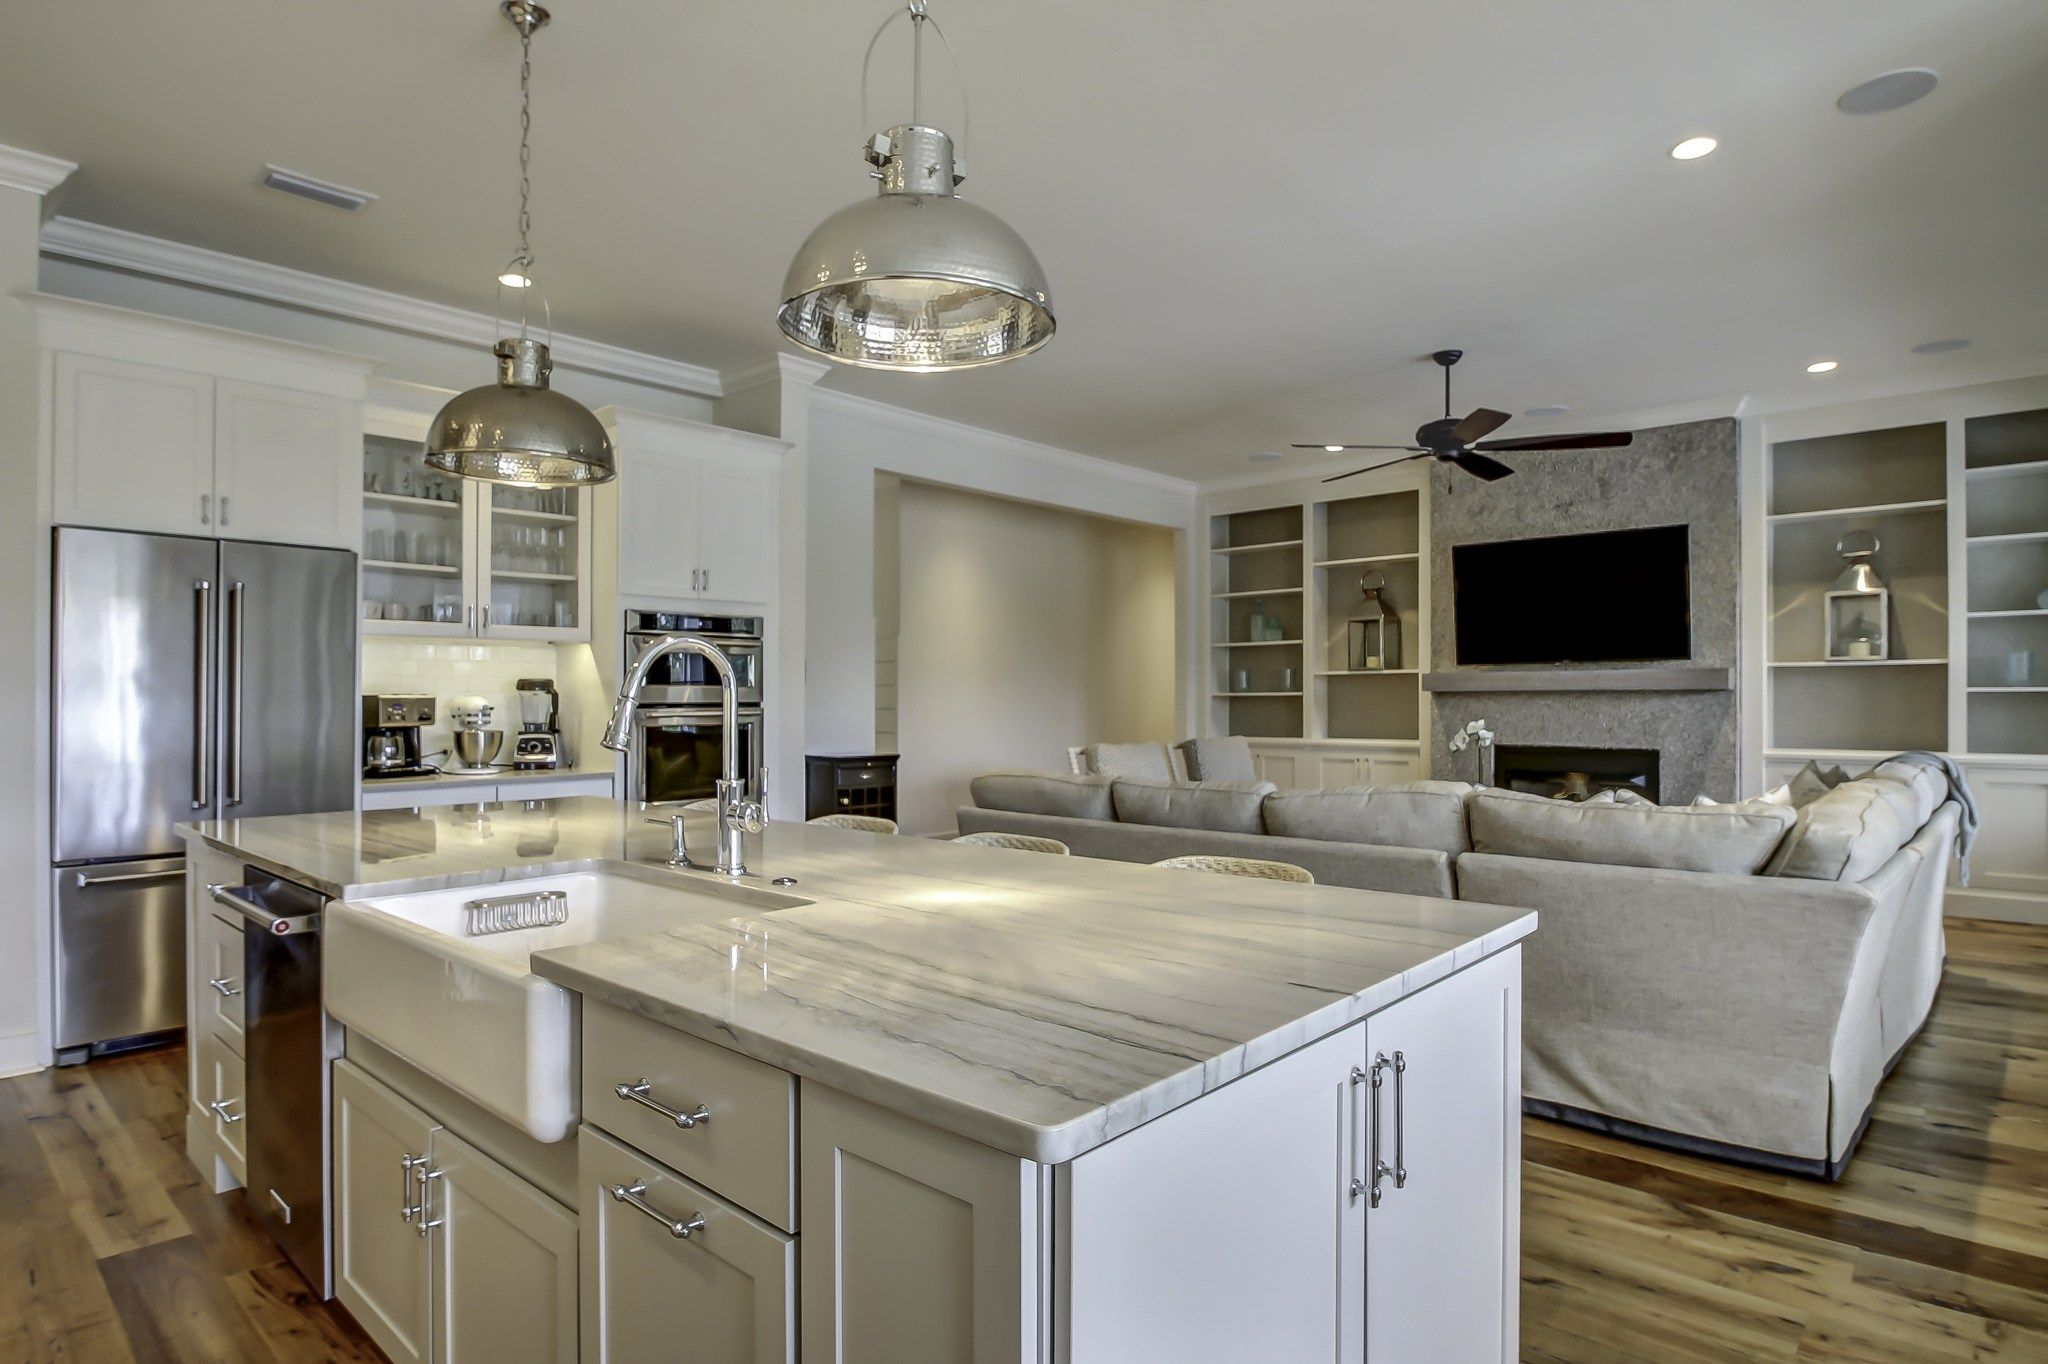 cool open concept kitchen island with sink kitchen island with sink open concept kitchen on kitchen remodel with island open concept id=91895